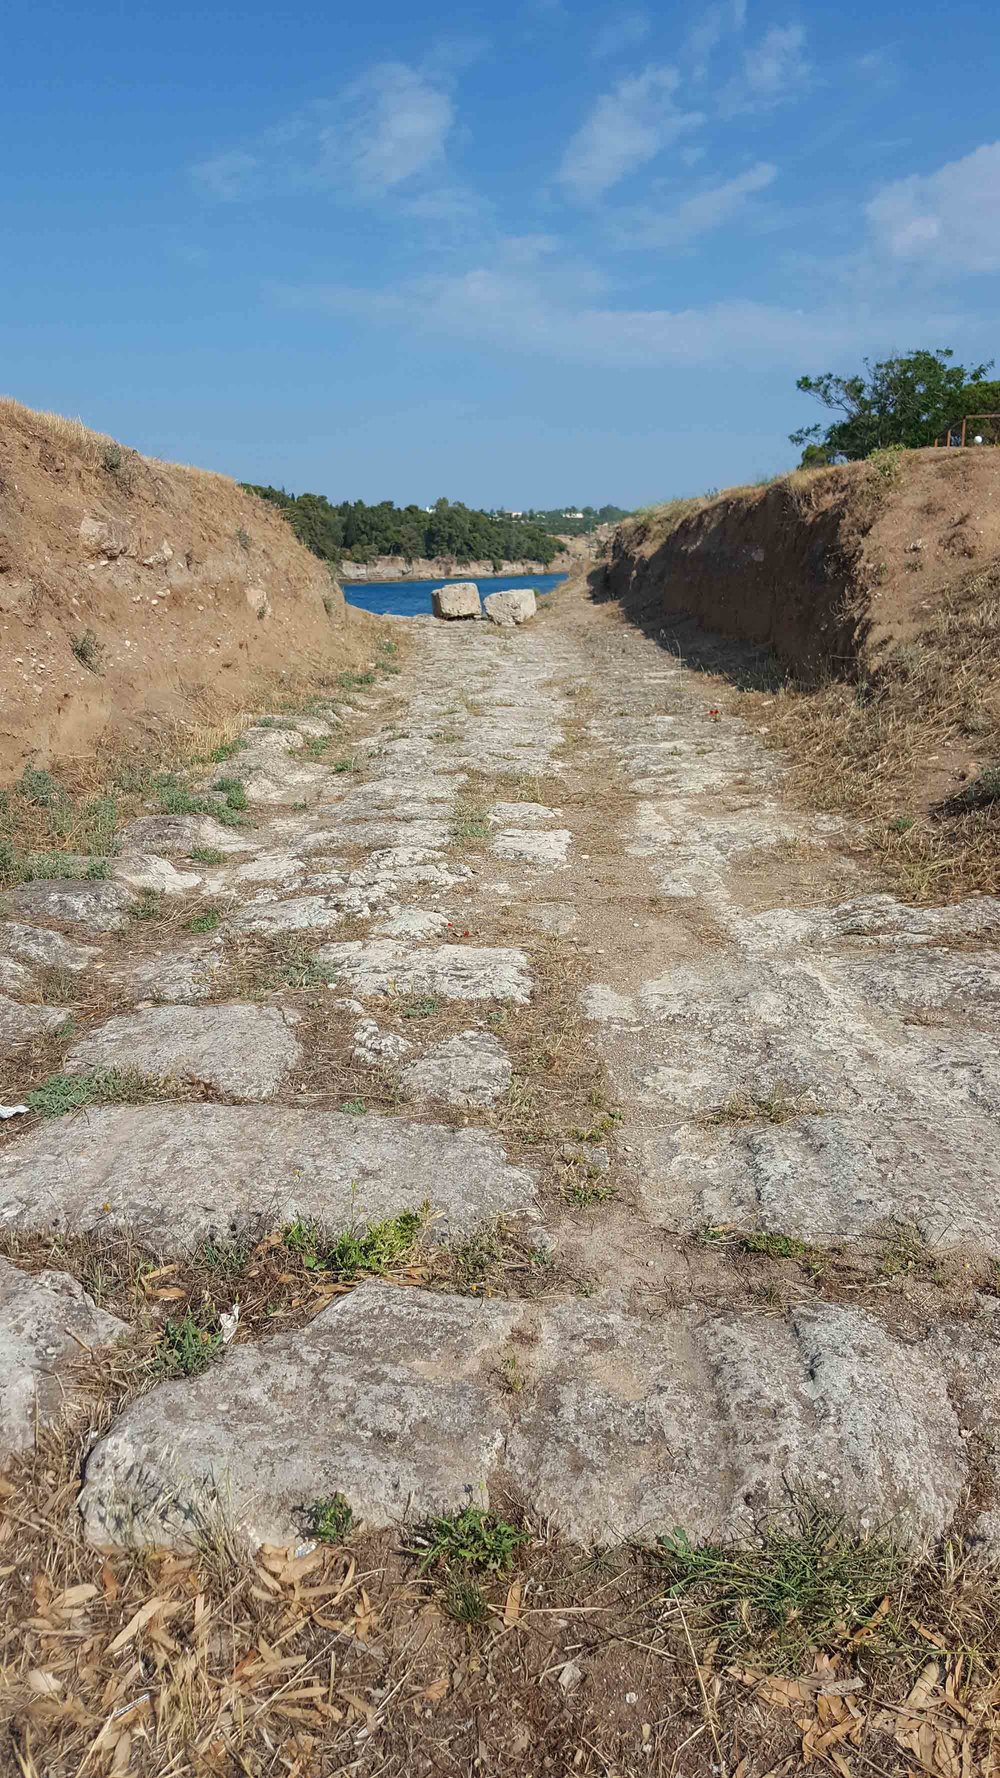 A small part of the Ancient Diolkos as it tracks northwards